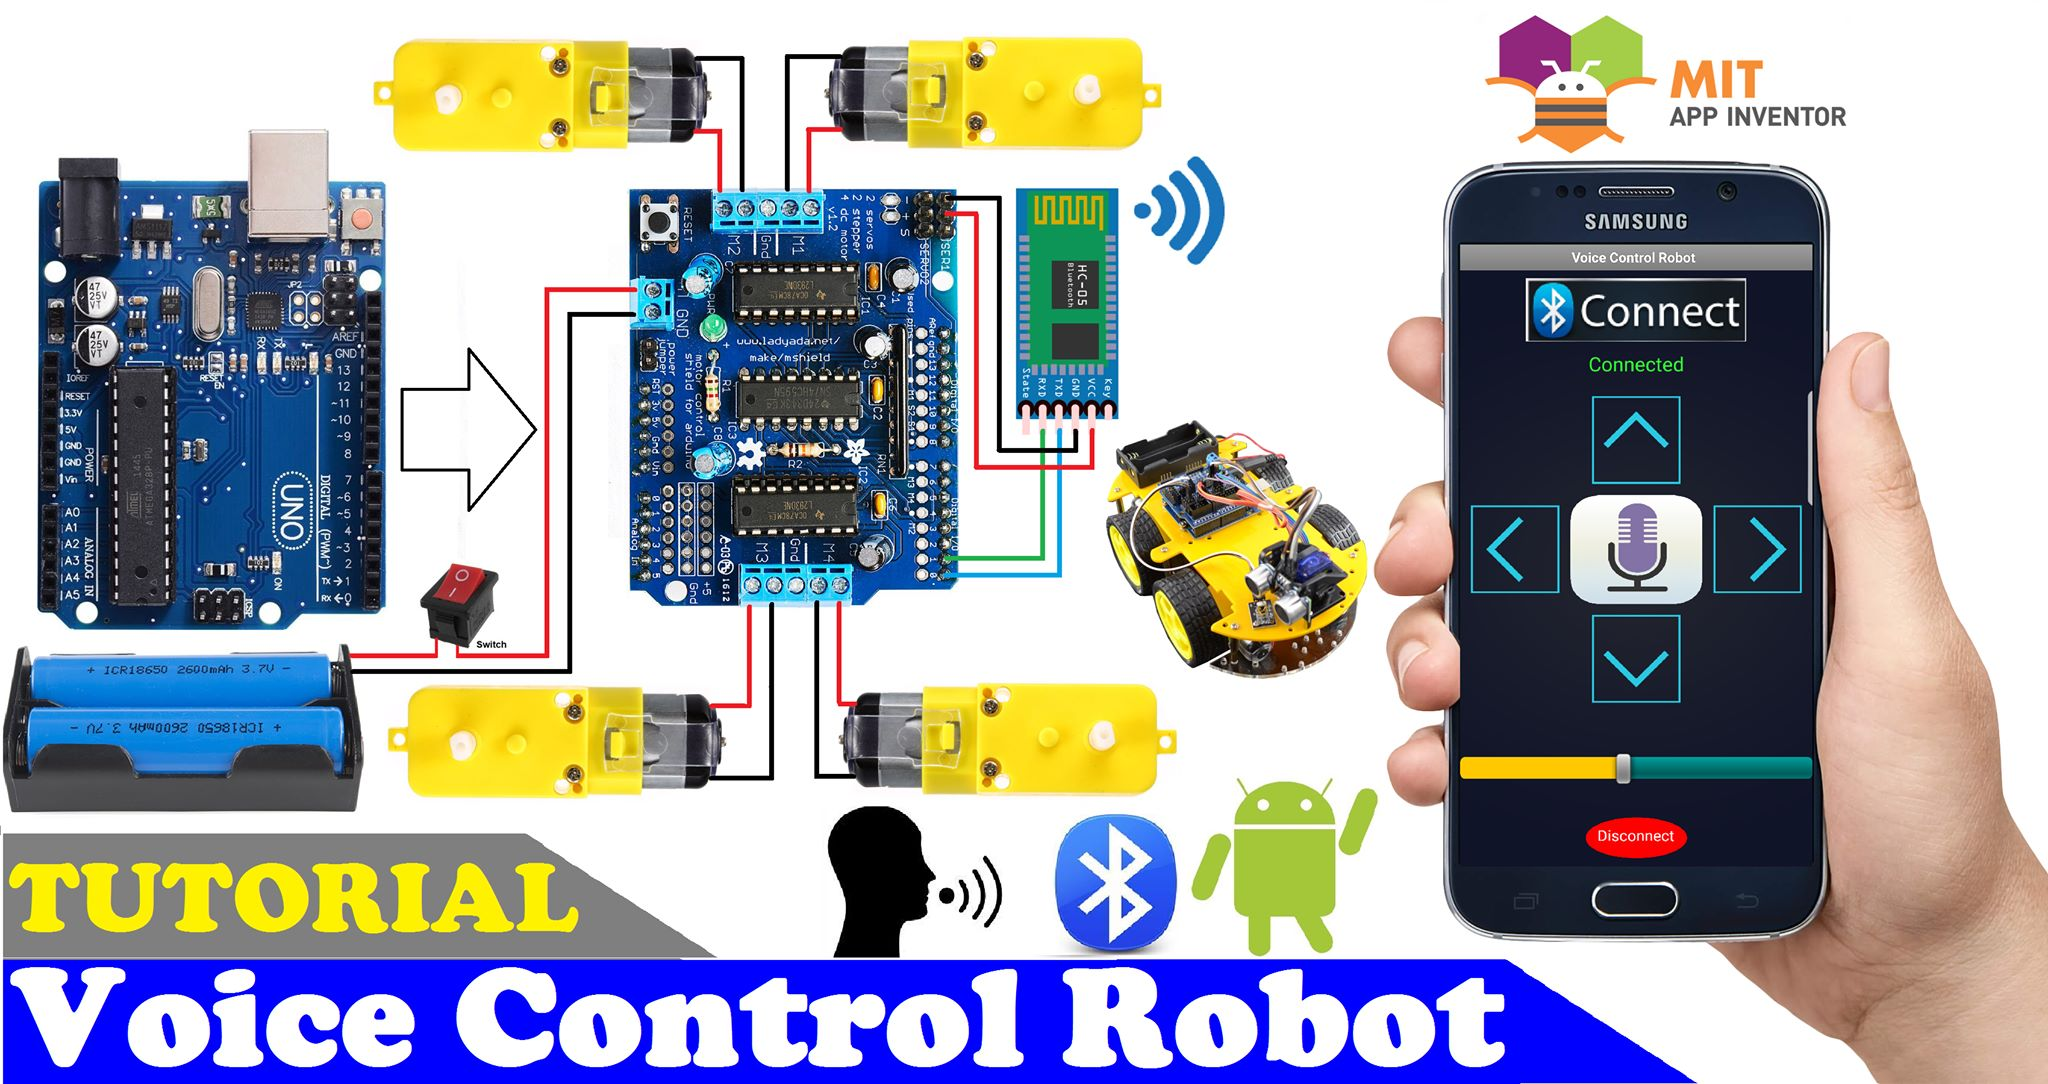 Voice control robot using arduino l293d shield and hc 05 bluetooth module i5gusi7sms